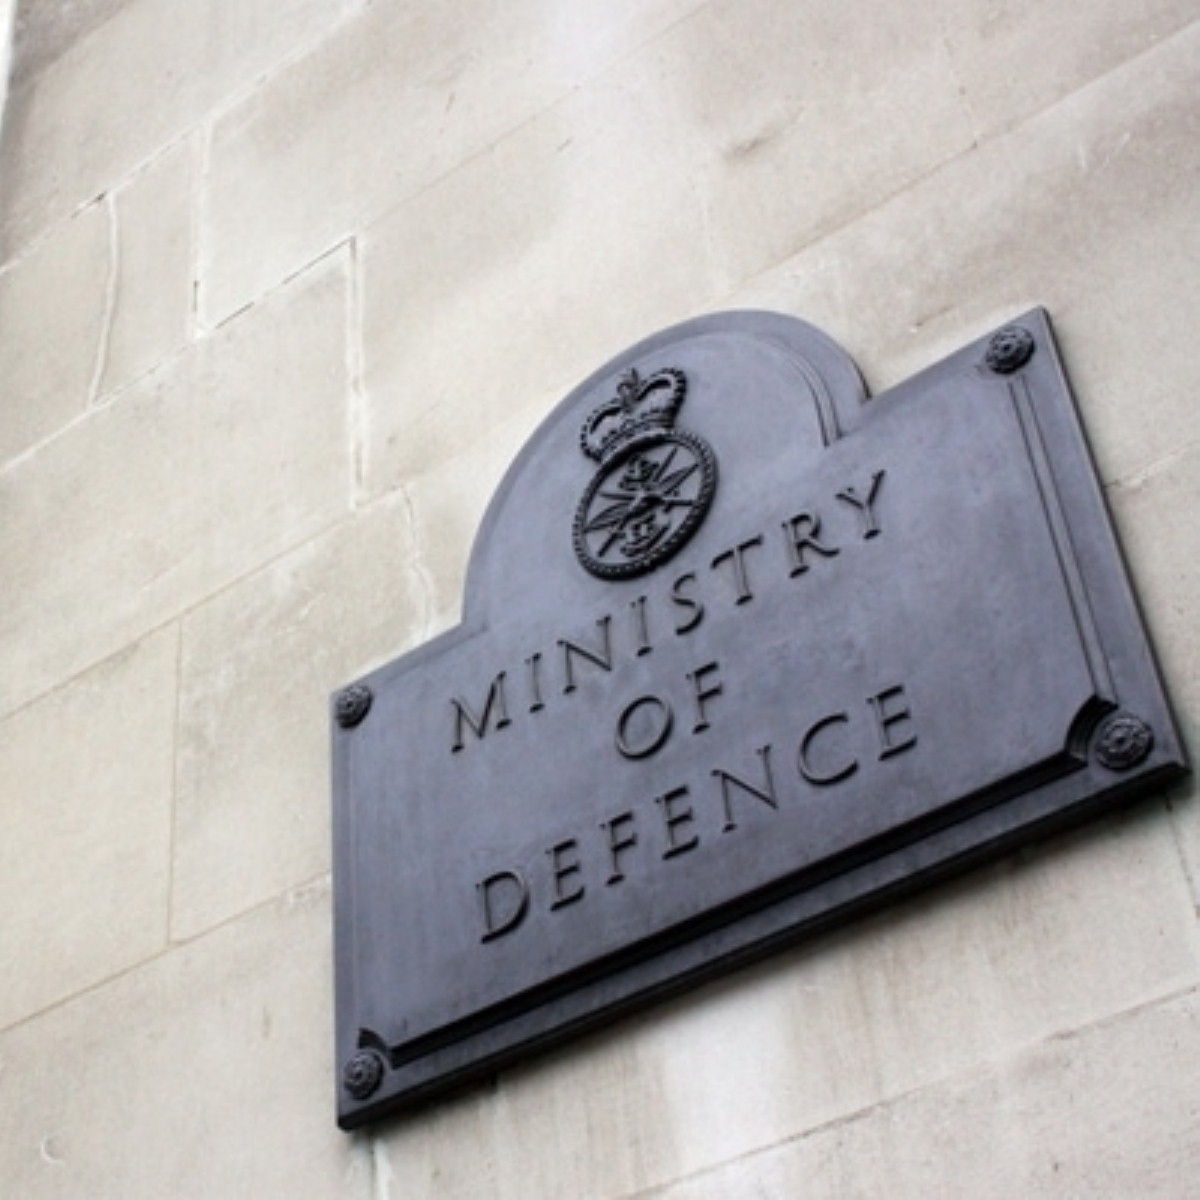 Official report: British military strength weakened by cuts